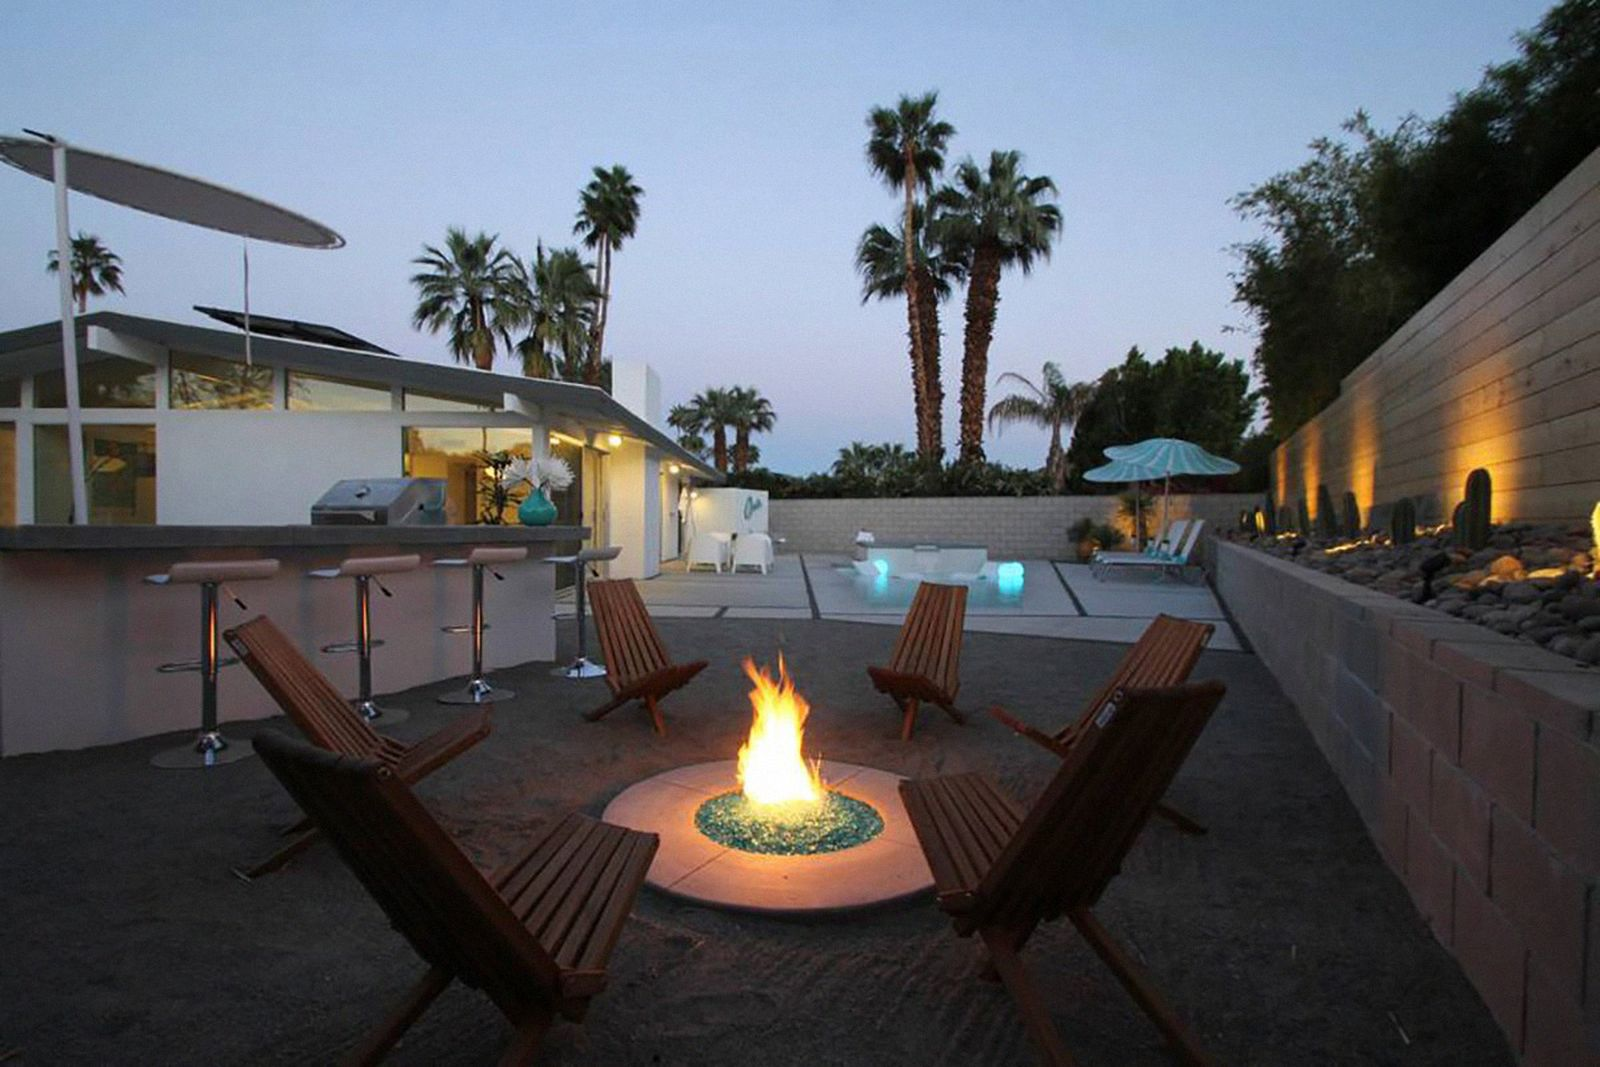 coachella 2019 x best places stay The Blue Oasis airbnb palm springs